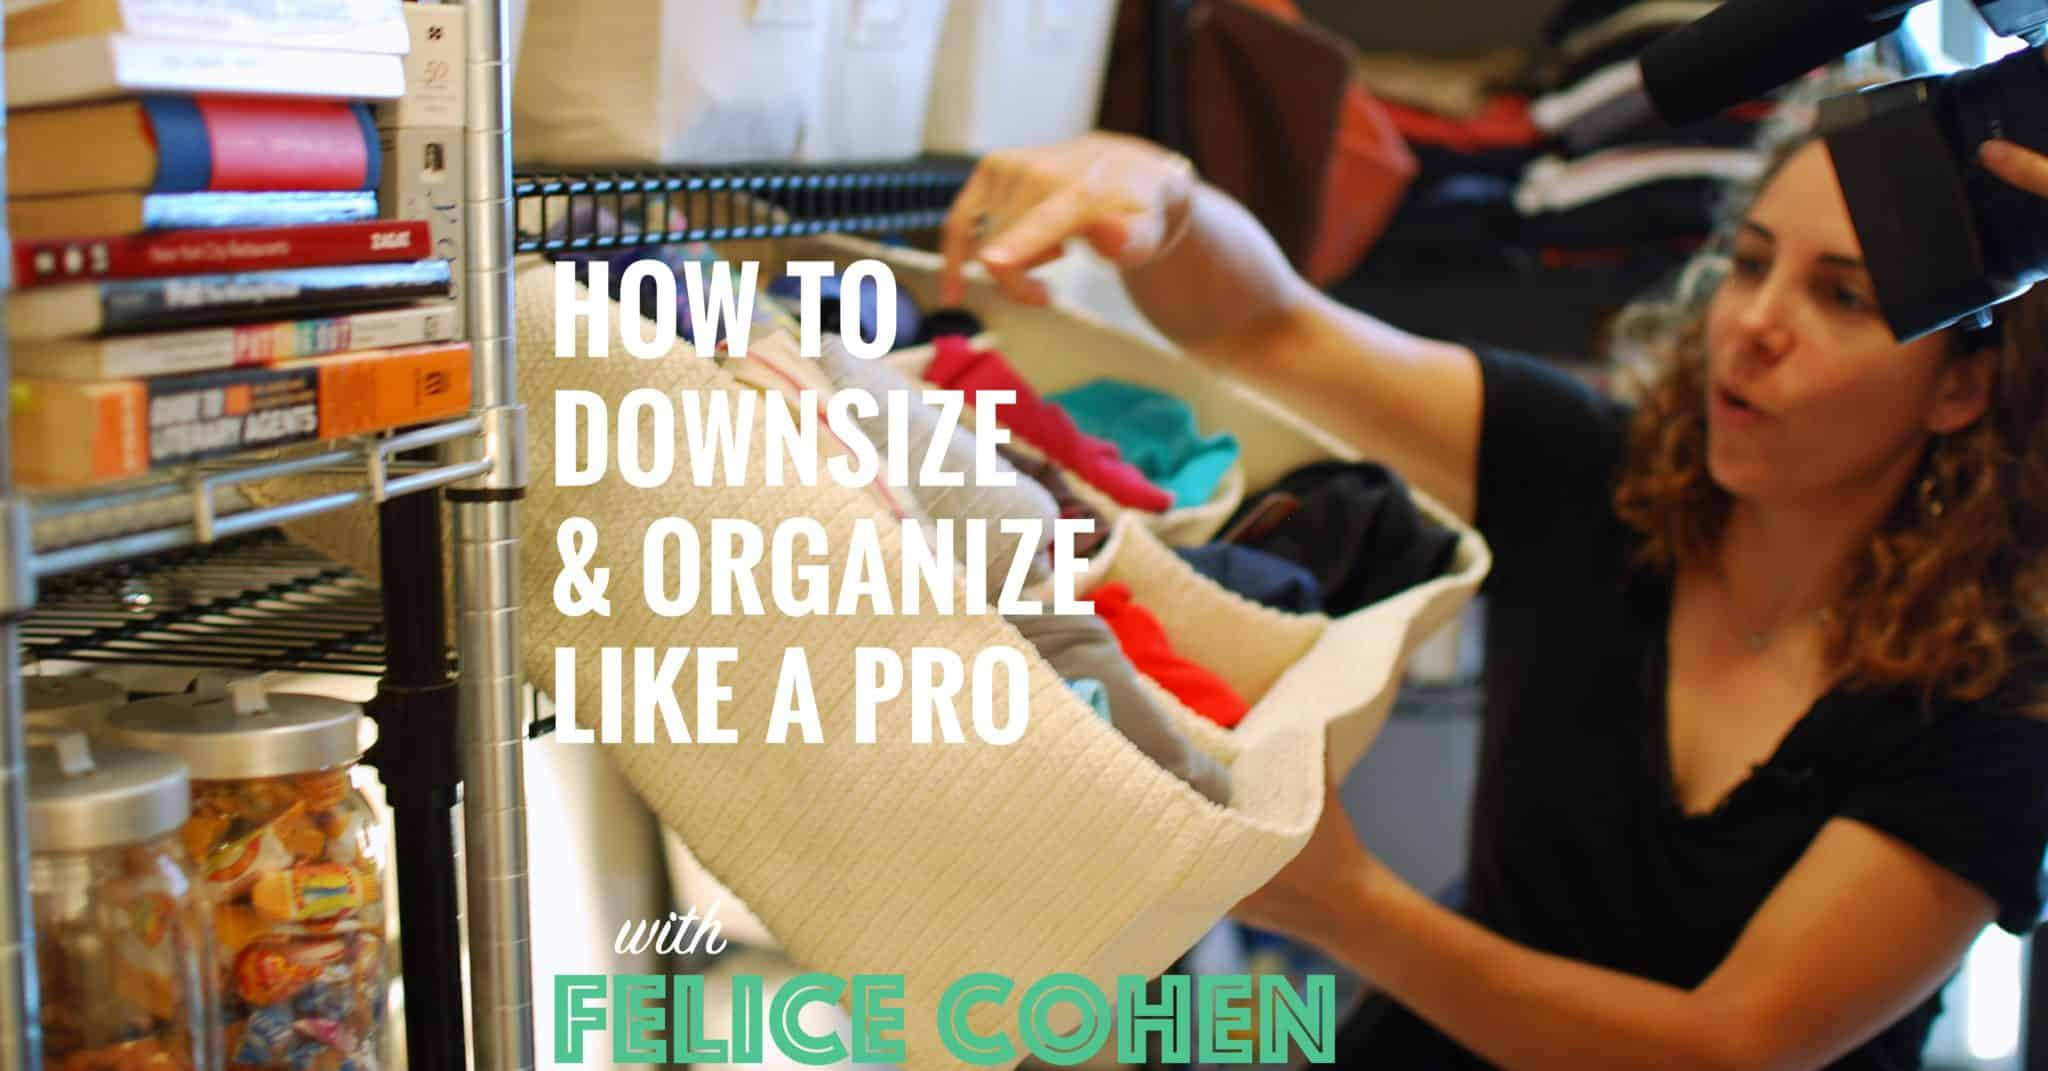 How To Downsize And Organize Lessons From Living In 90sf With Felice Cohen 030